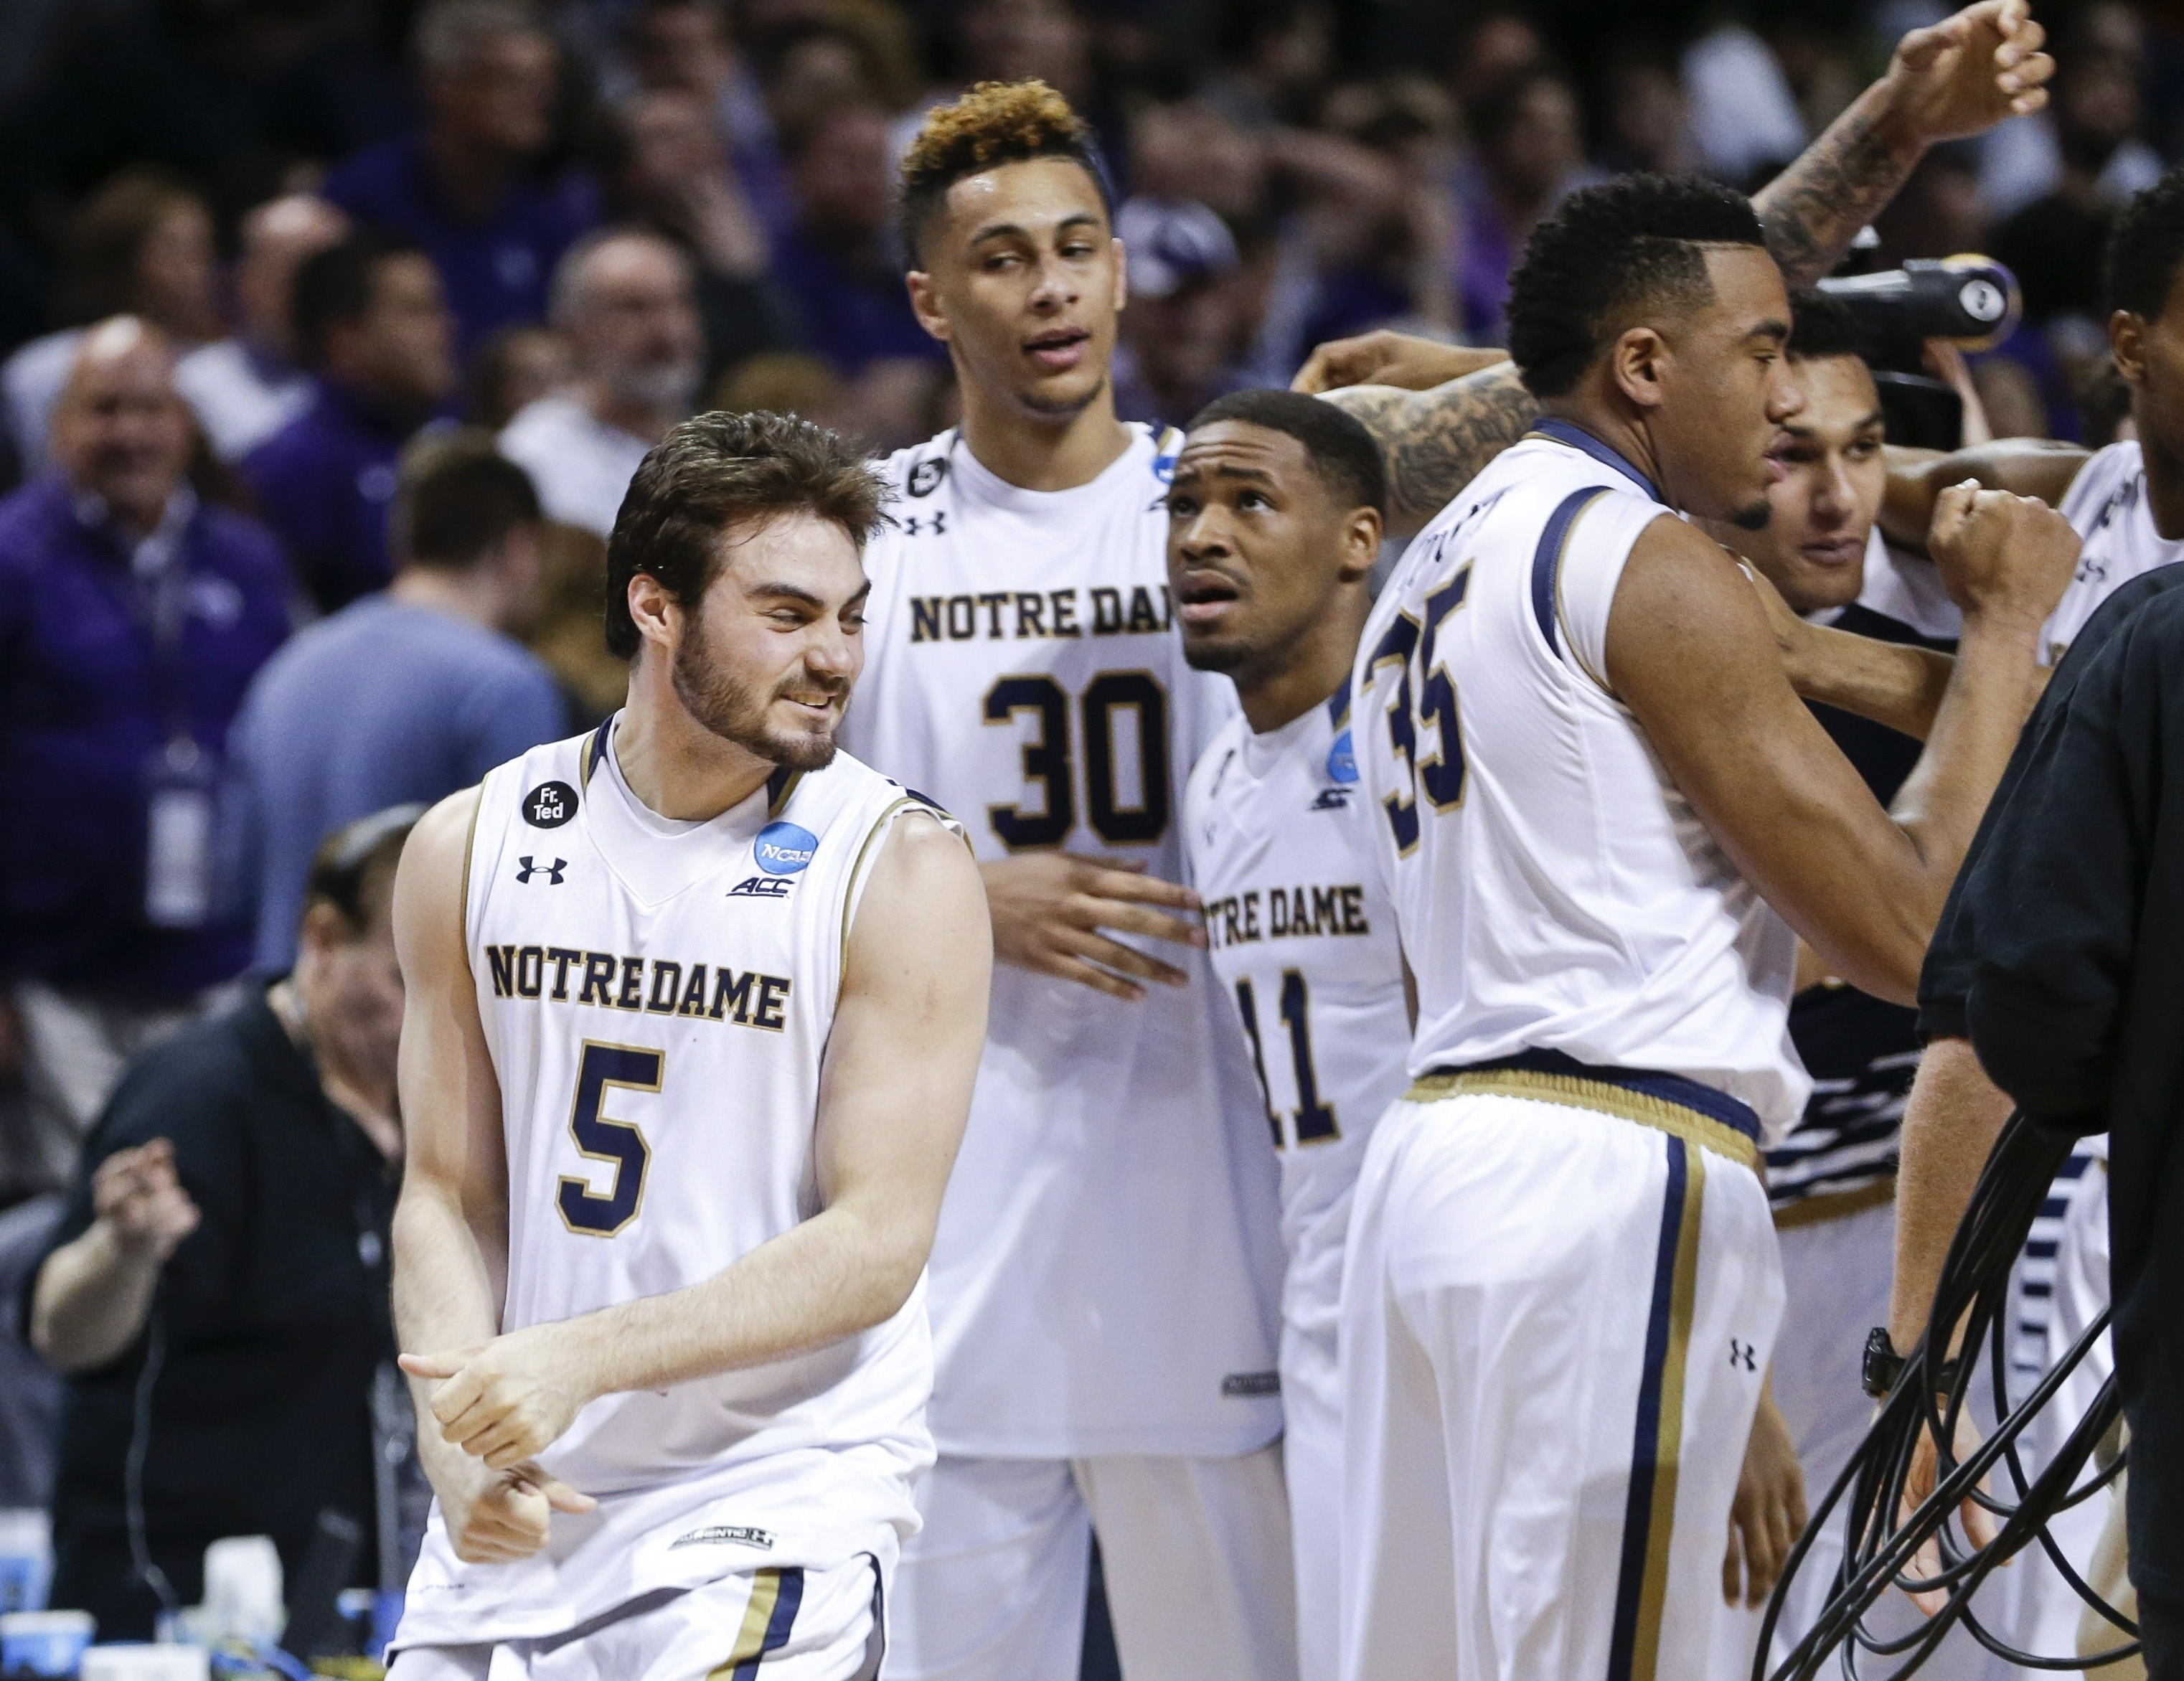 Notre Dame's Matt Farrell (5), Zach Auguste (30) and Demetrius Jackson (11) celebrate with teammates after a second-round men's college basketball game against Stephen F. Austin in the NCAA Tournament, Sunday, March 20, 2016, in New York.  (AP Photo/Frank